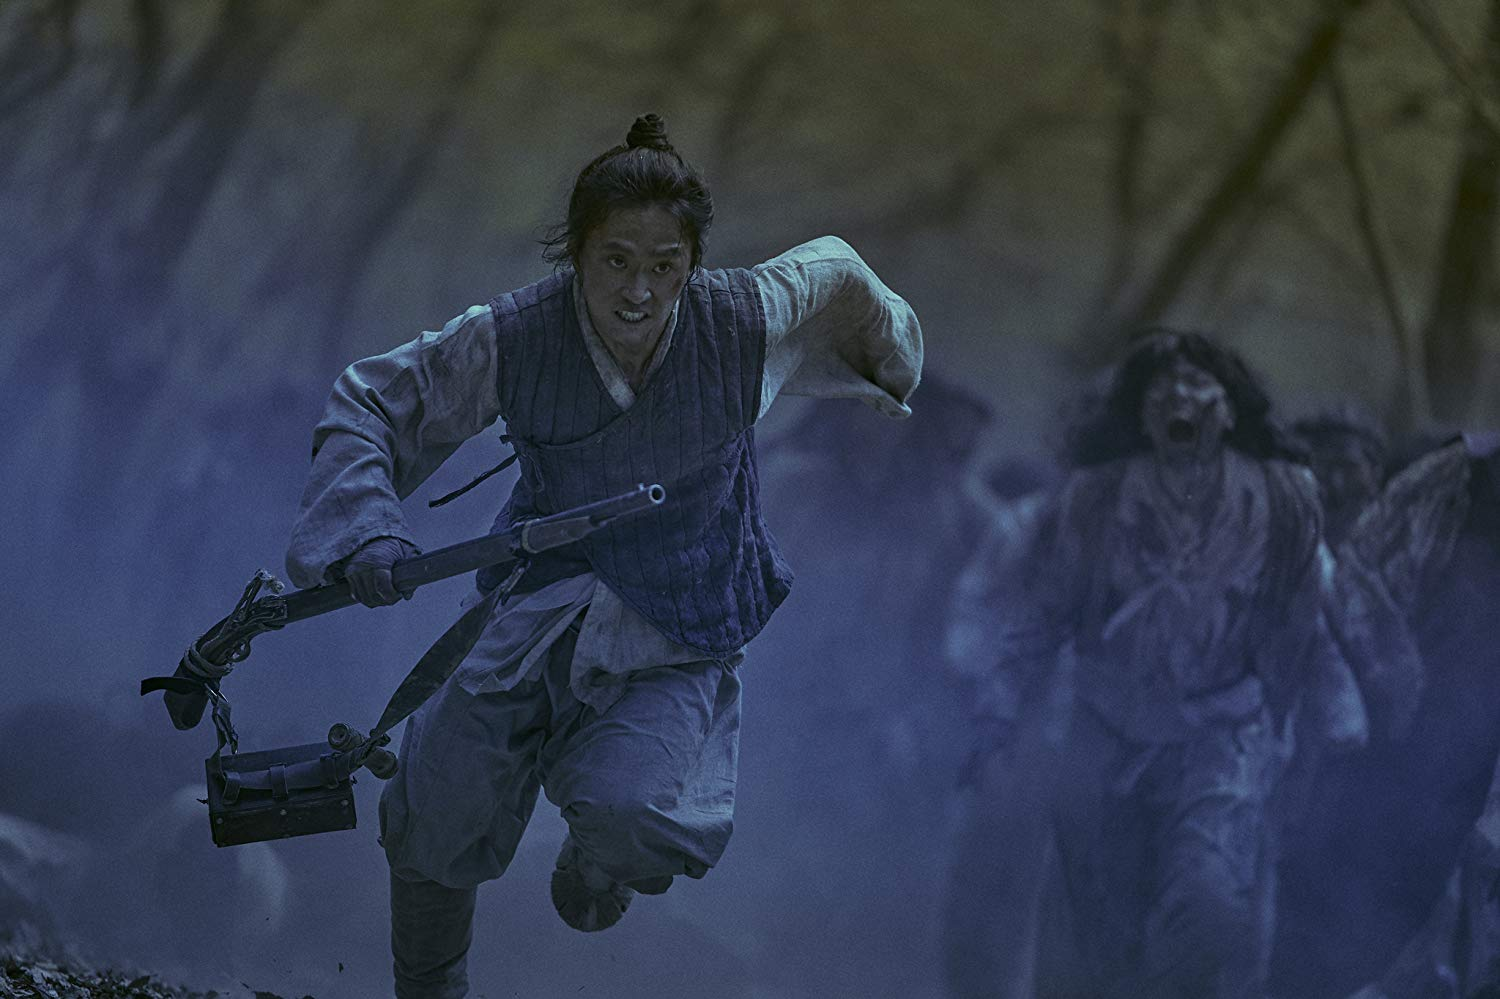 Kingdom, guerrier échappant à une horde de zombies #kingdom #series #netflix #korea #middleagekorea #undeadseries #horrorseries #asiancinema